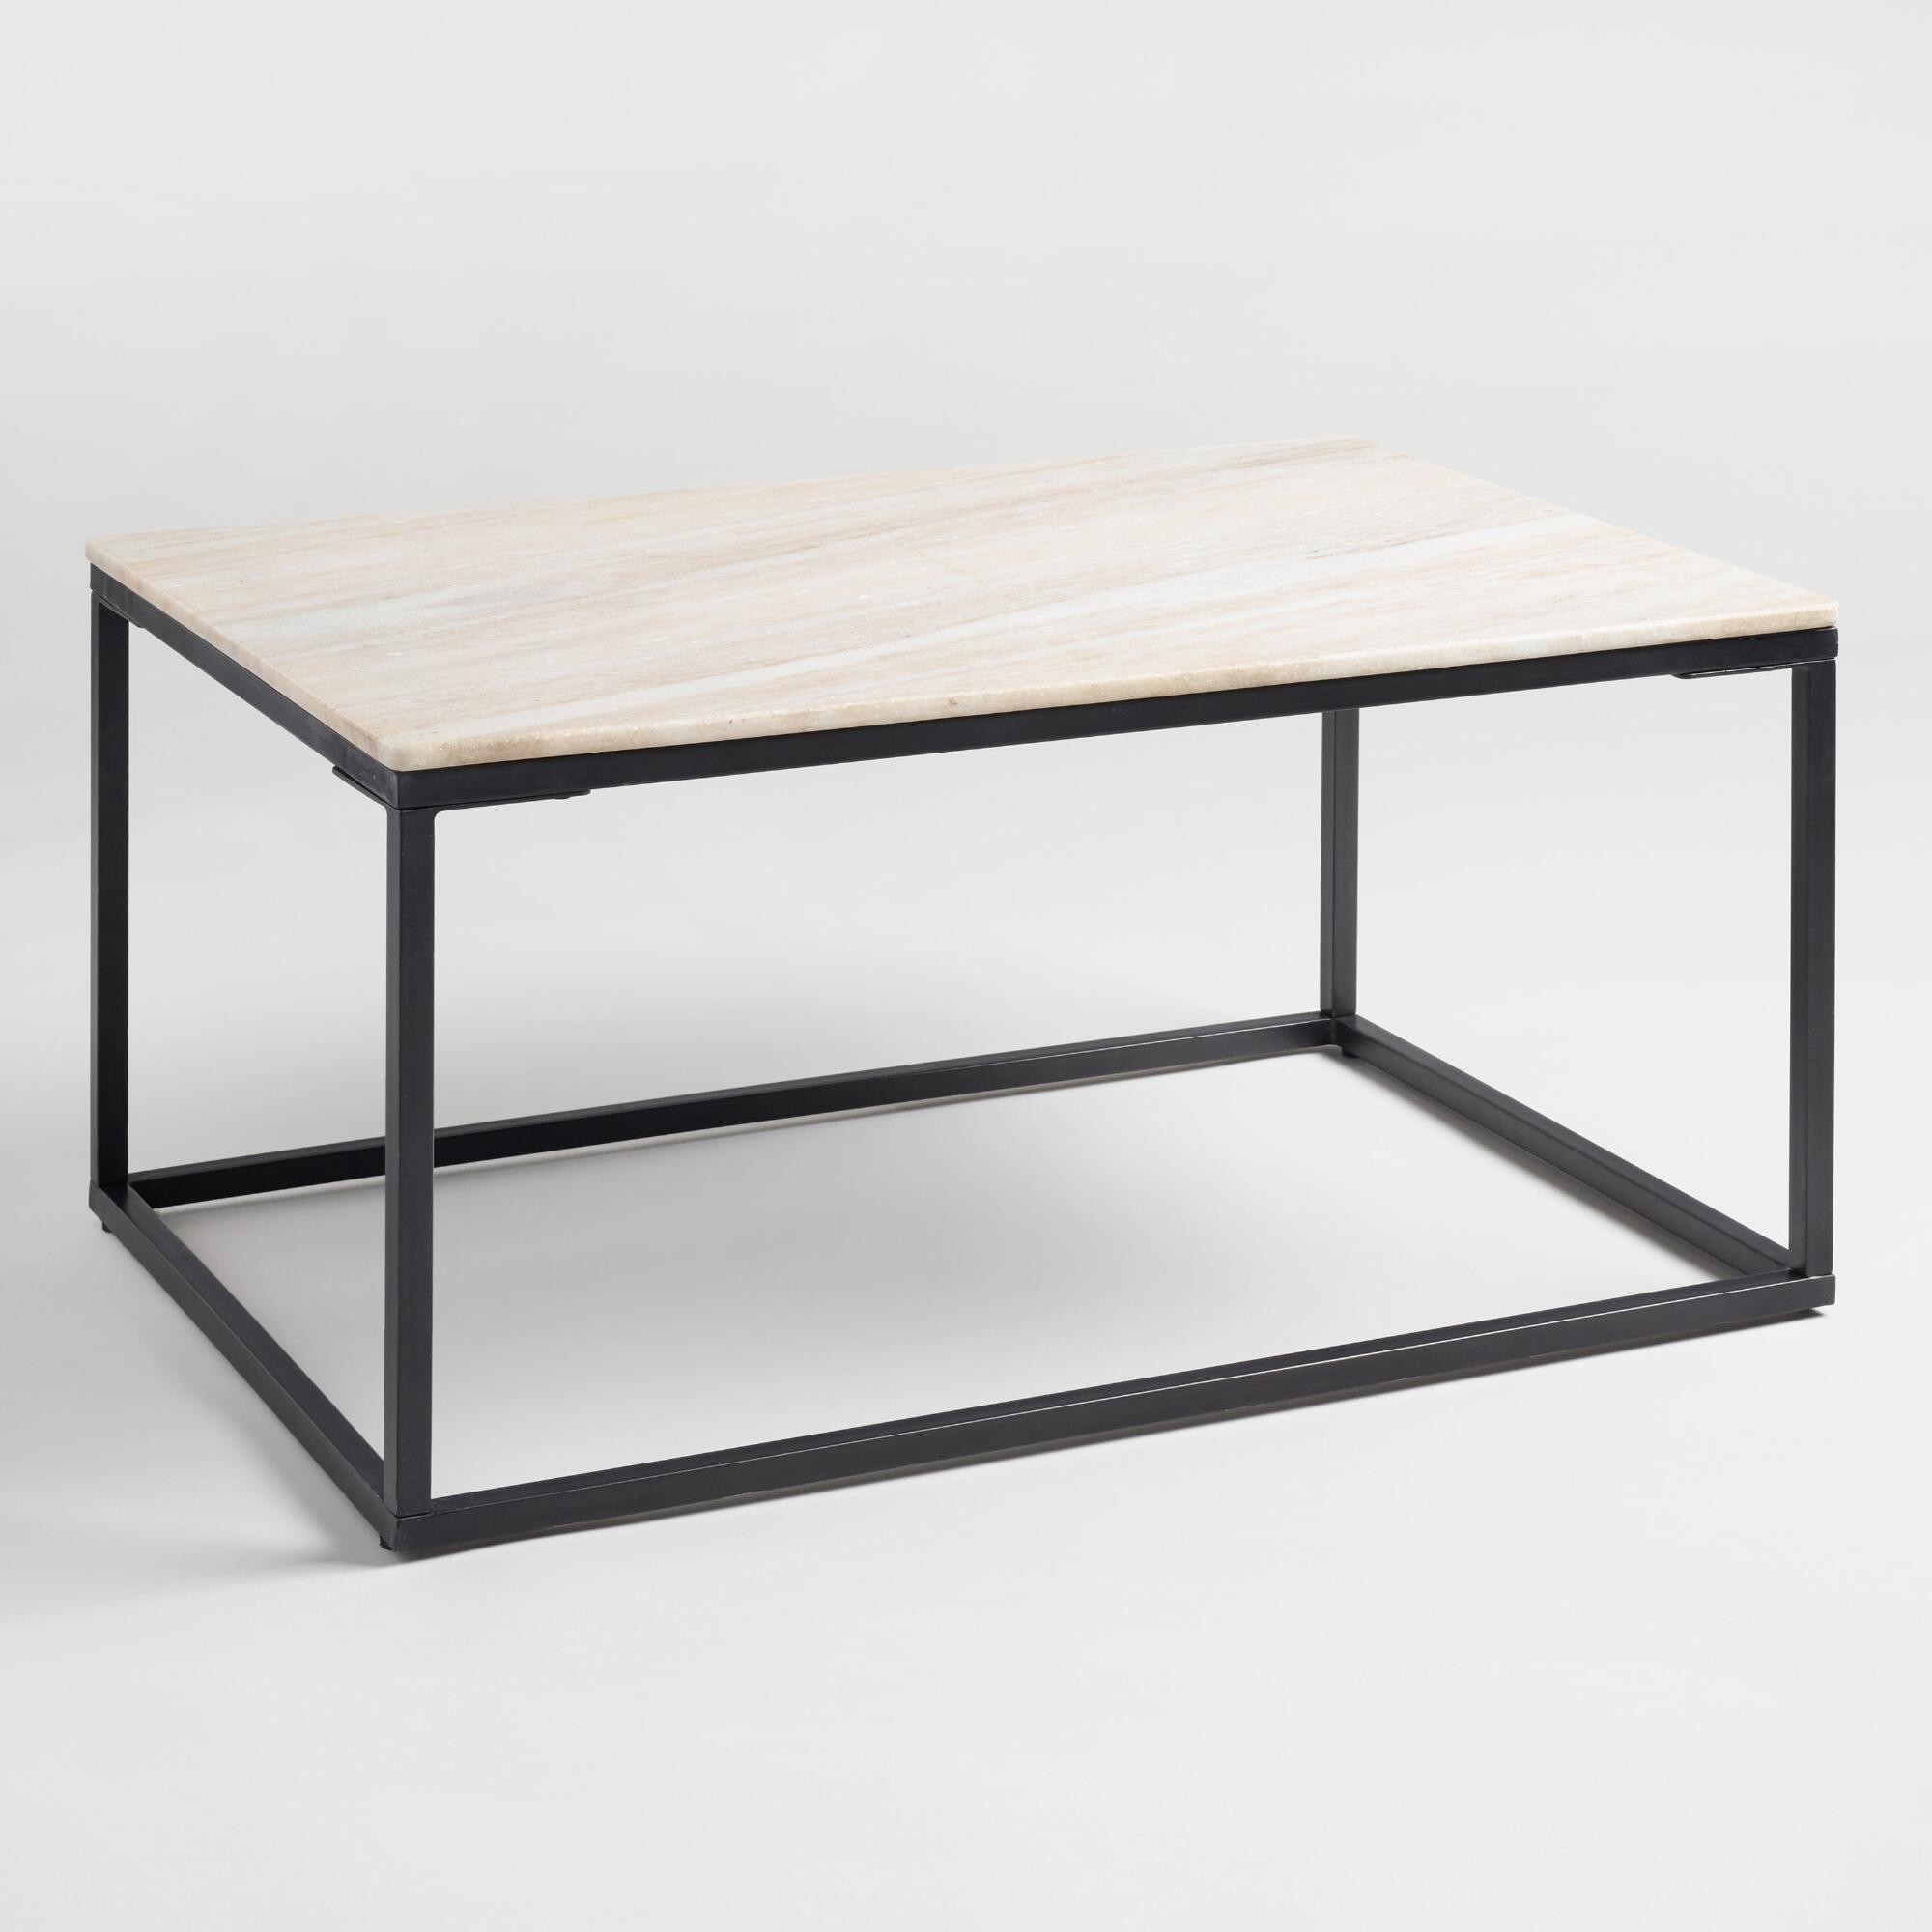 Coffee table ideas because baby is walking Nesting